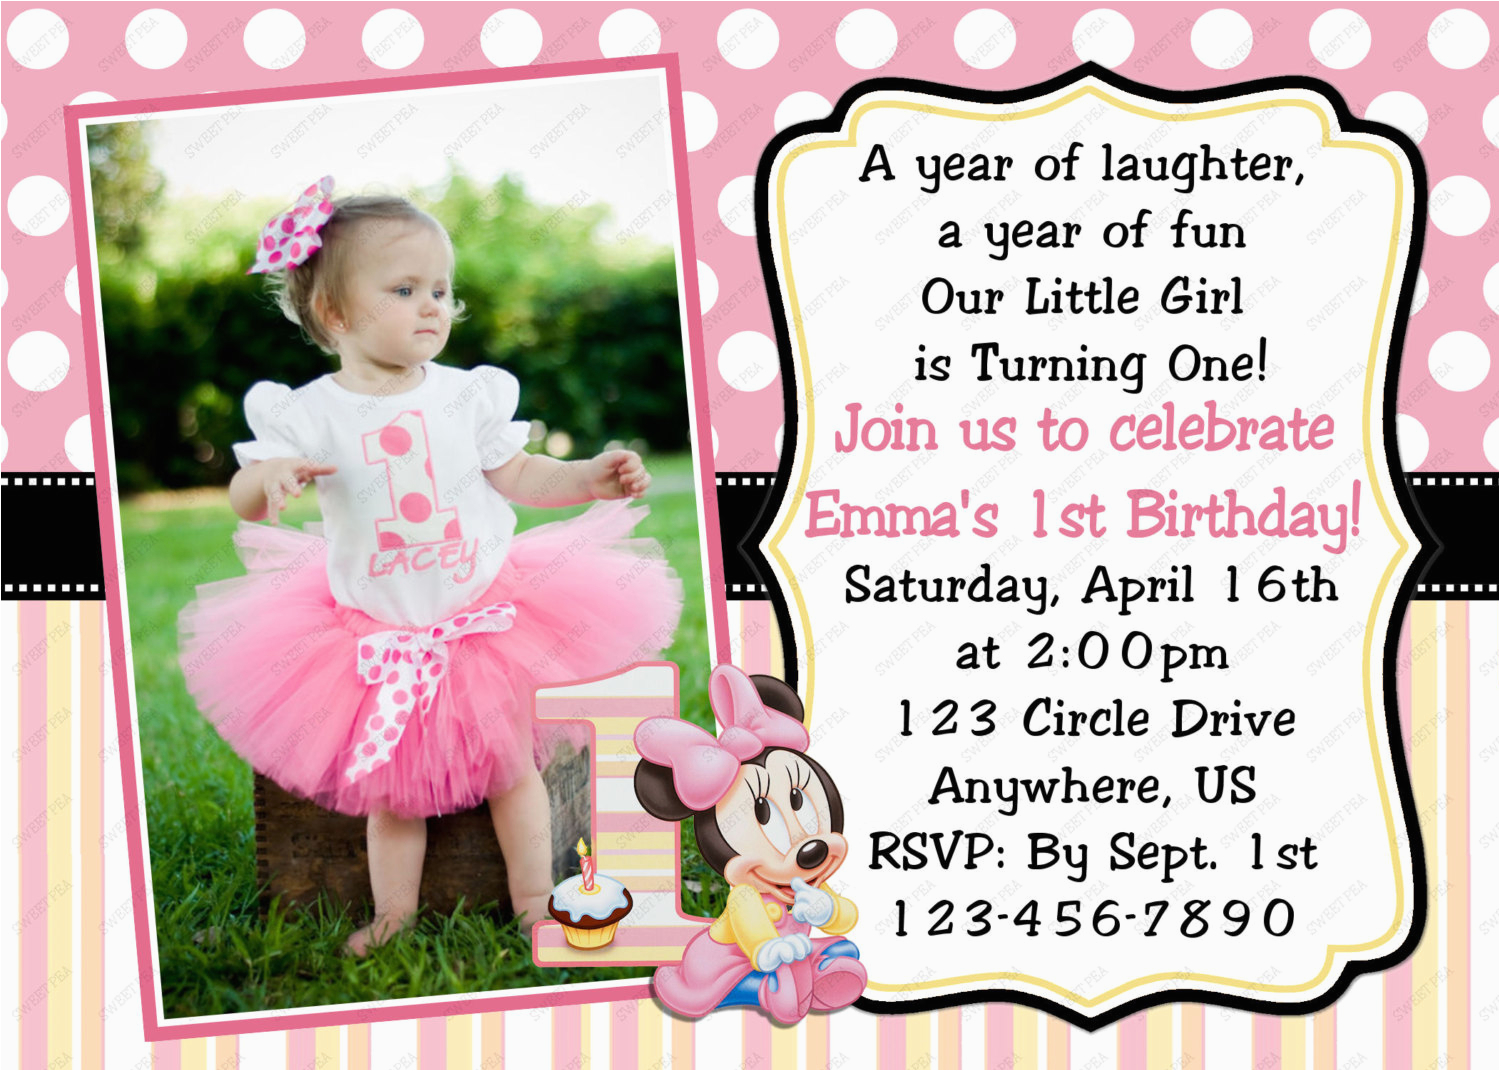 Create 1st Birthday Invitation Card Online Free Printable Invitations Girl With High Definition